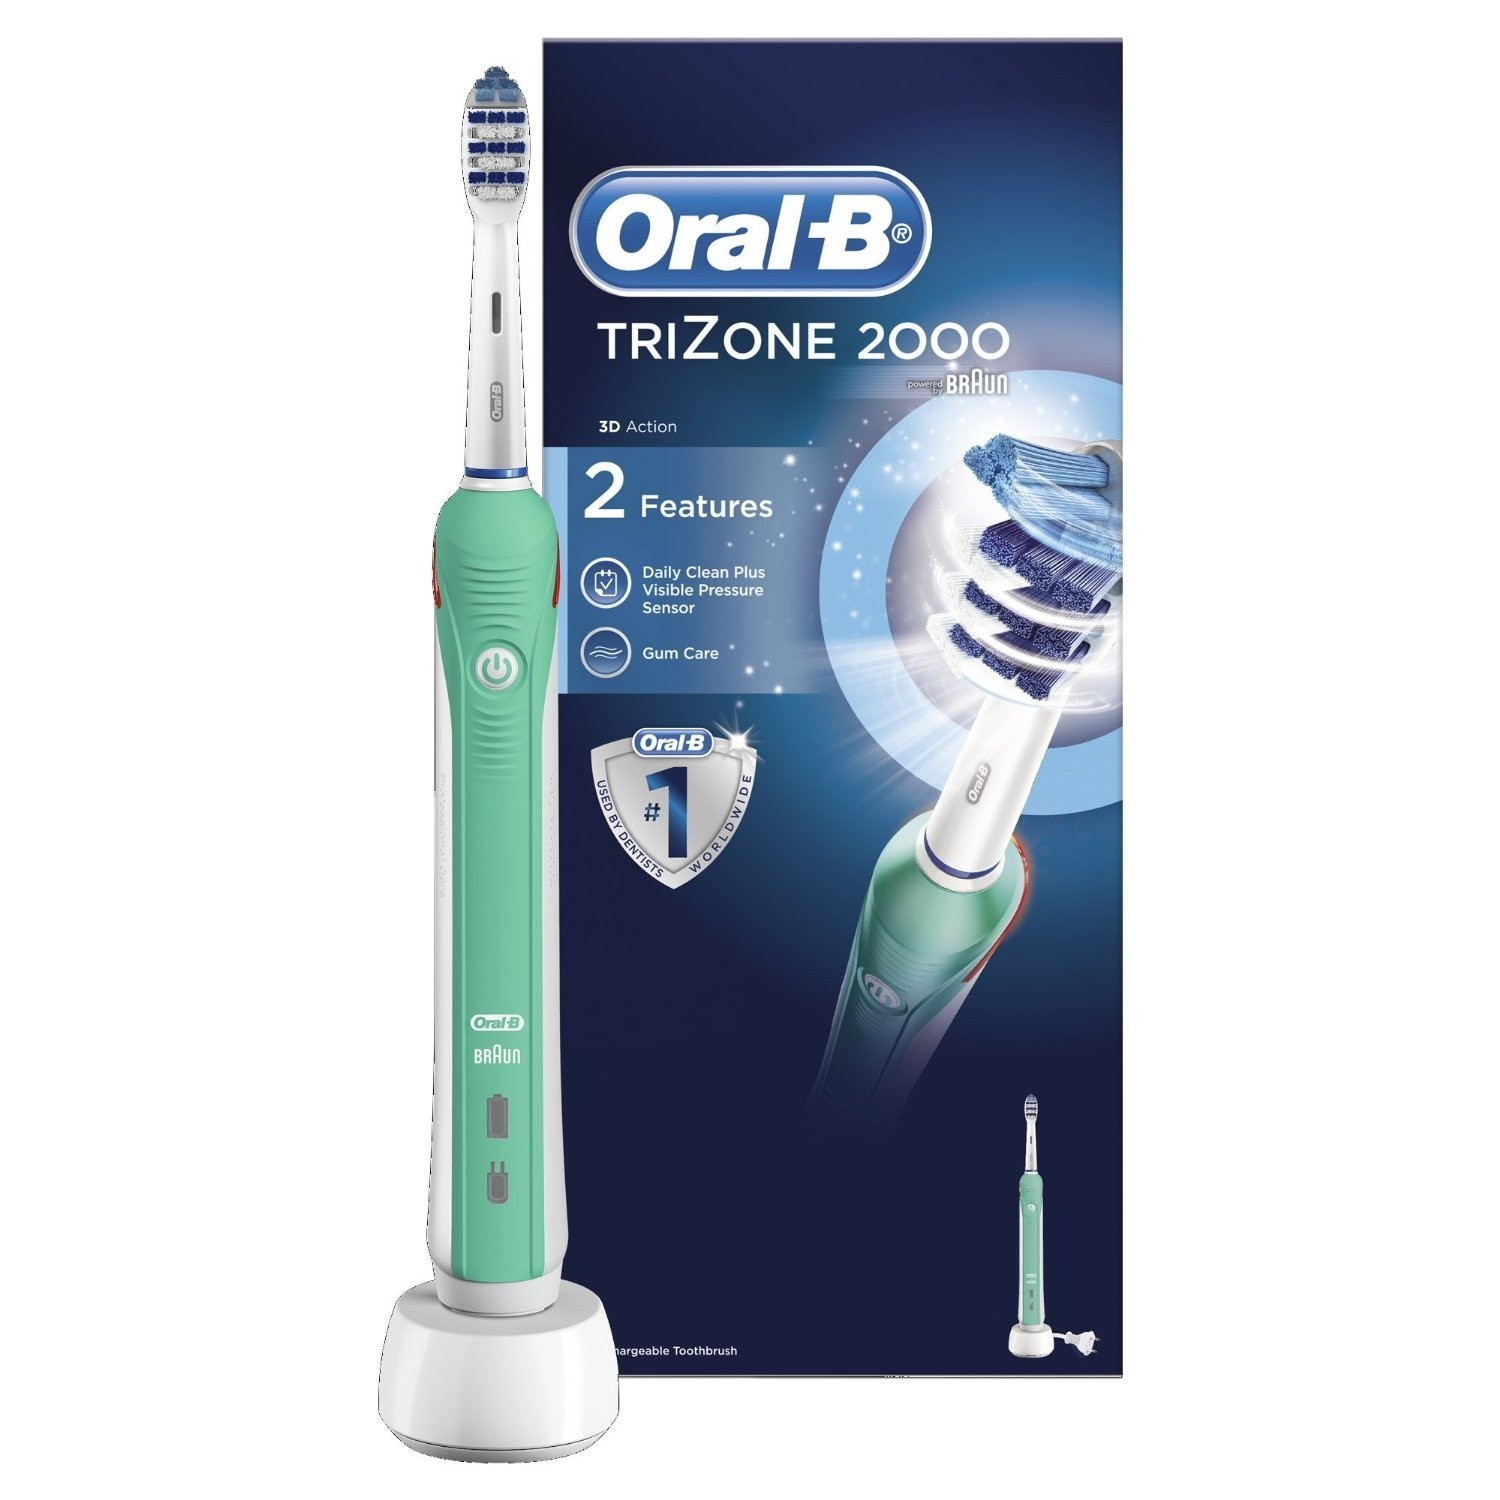 OralB Trizone 2000 Electric Rechargeable Toothbrush Powered by Braun